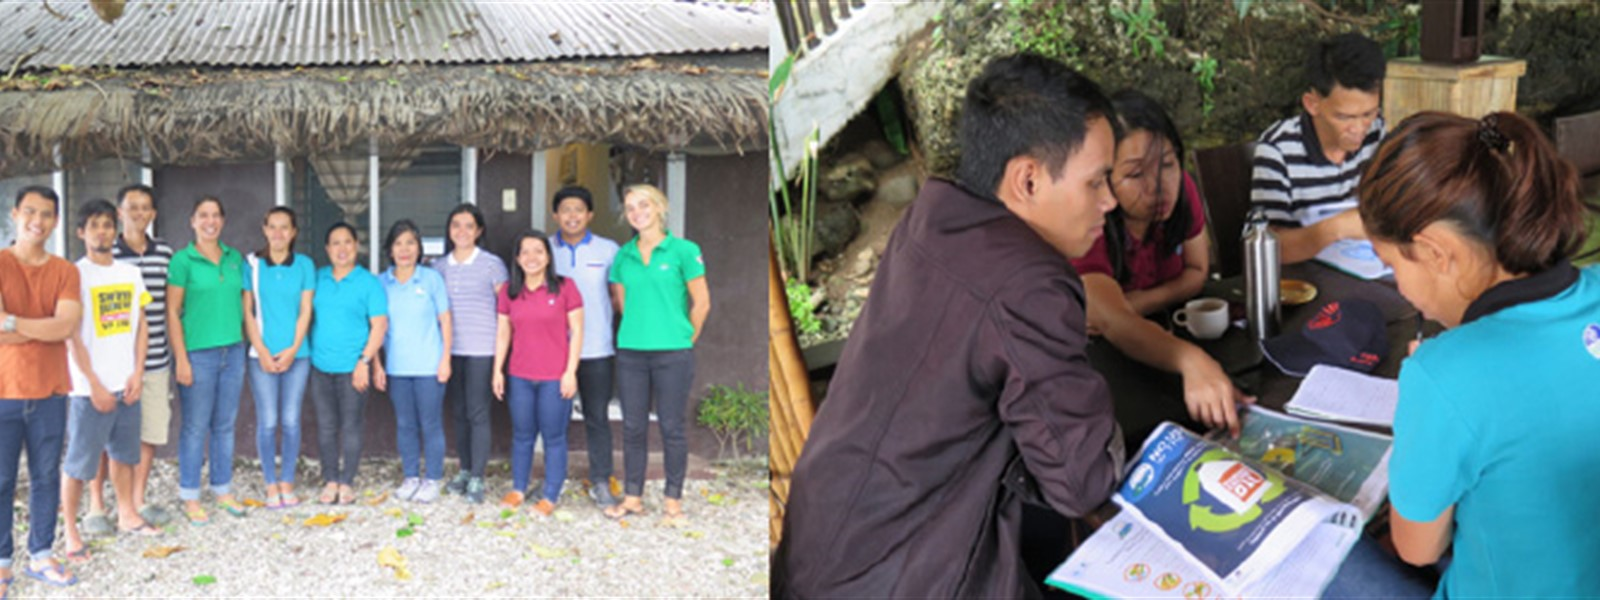 Picture of the Reef-World team with the Green Fins Coordinators in Mabini.